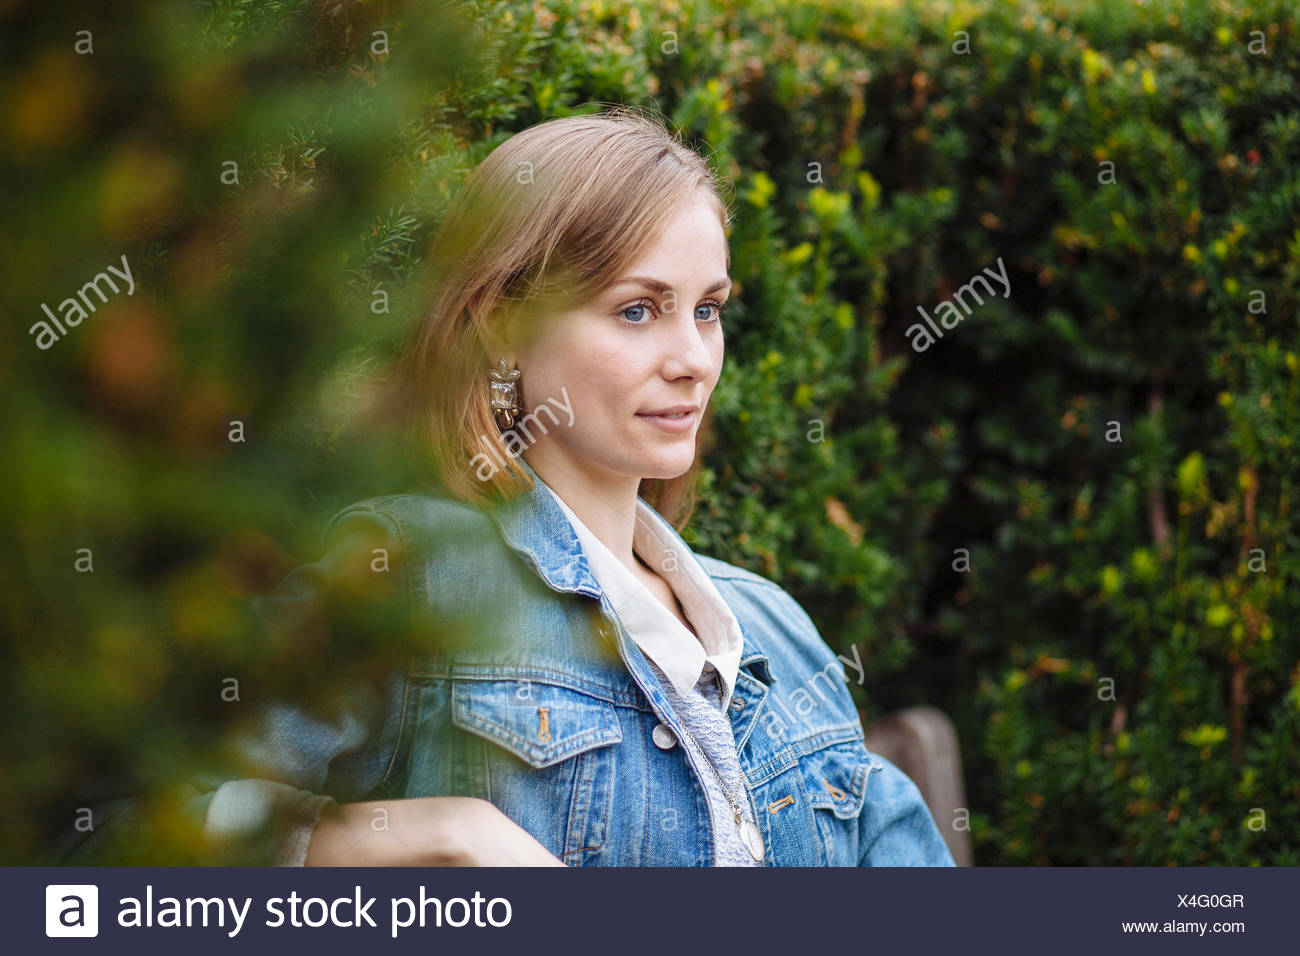 Young woman gazing from park bench - Stock Image